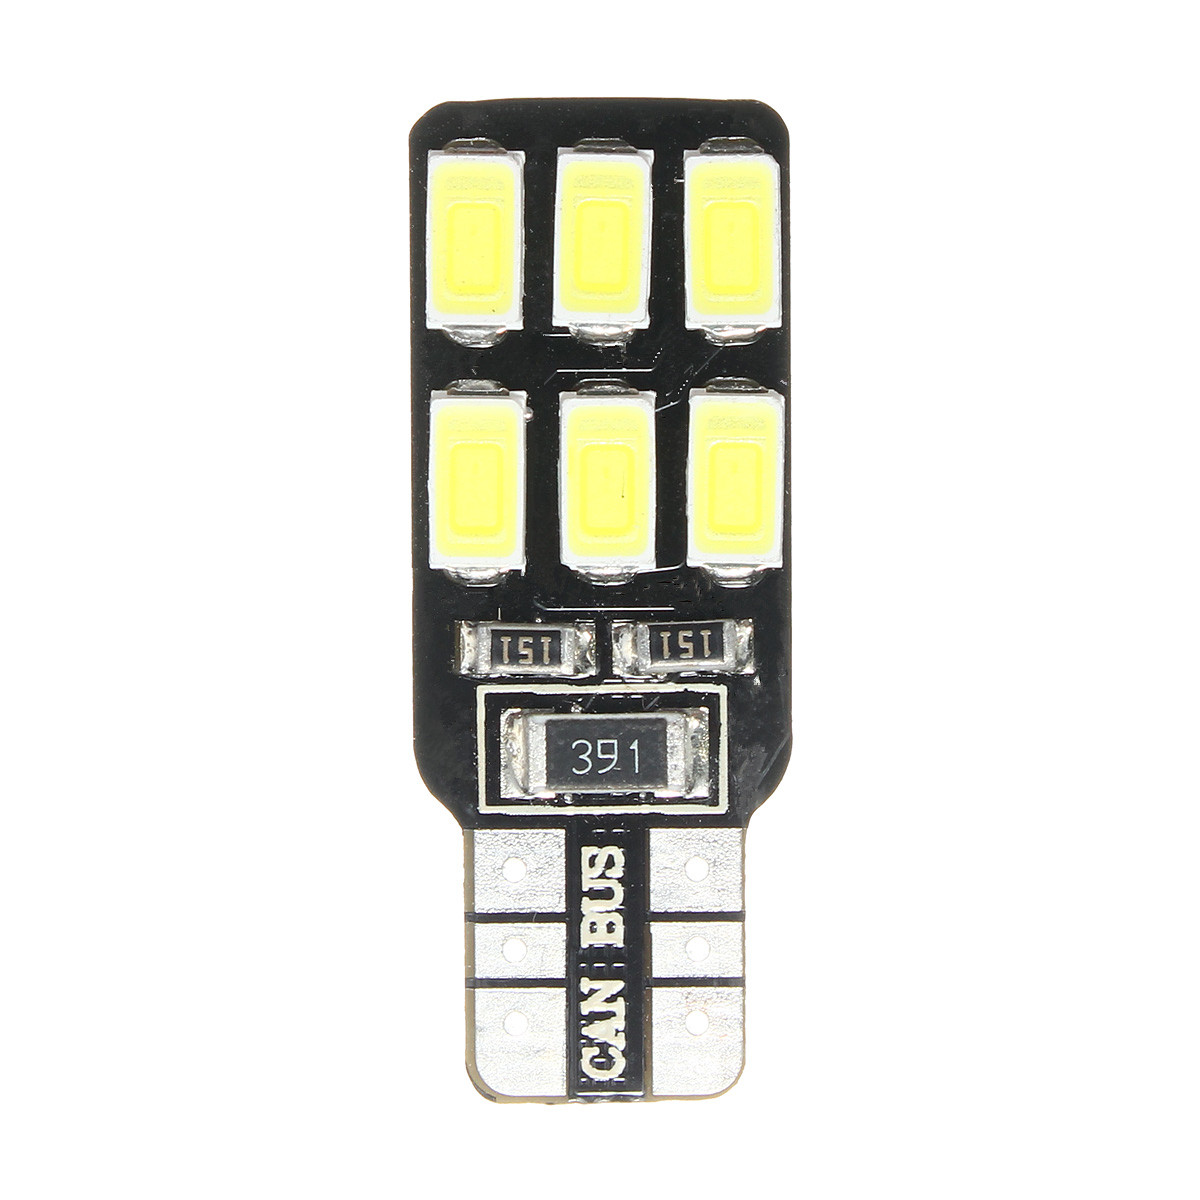 2 x T10 194 5730 LED 12SMD Canbus Error Free Side Marker License Plate Light Bulb